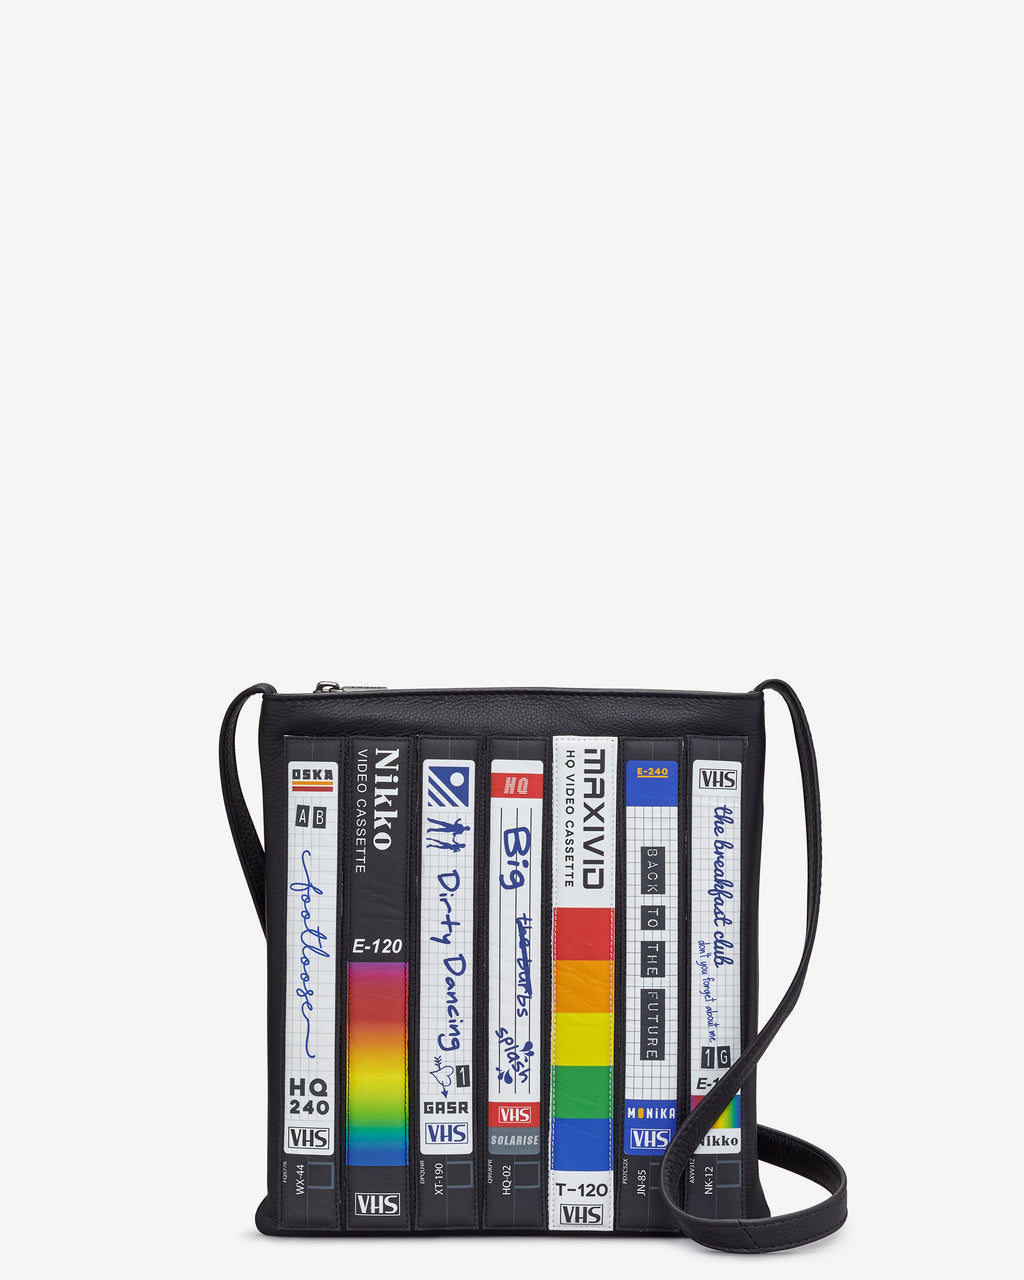 Be Kind Rewind Leather Cross Body Bag